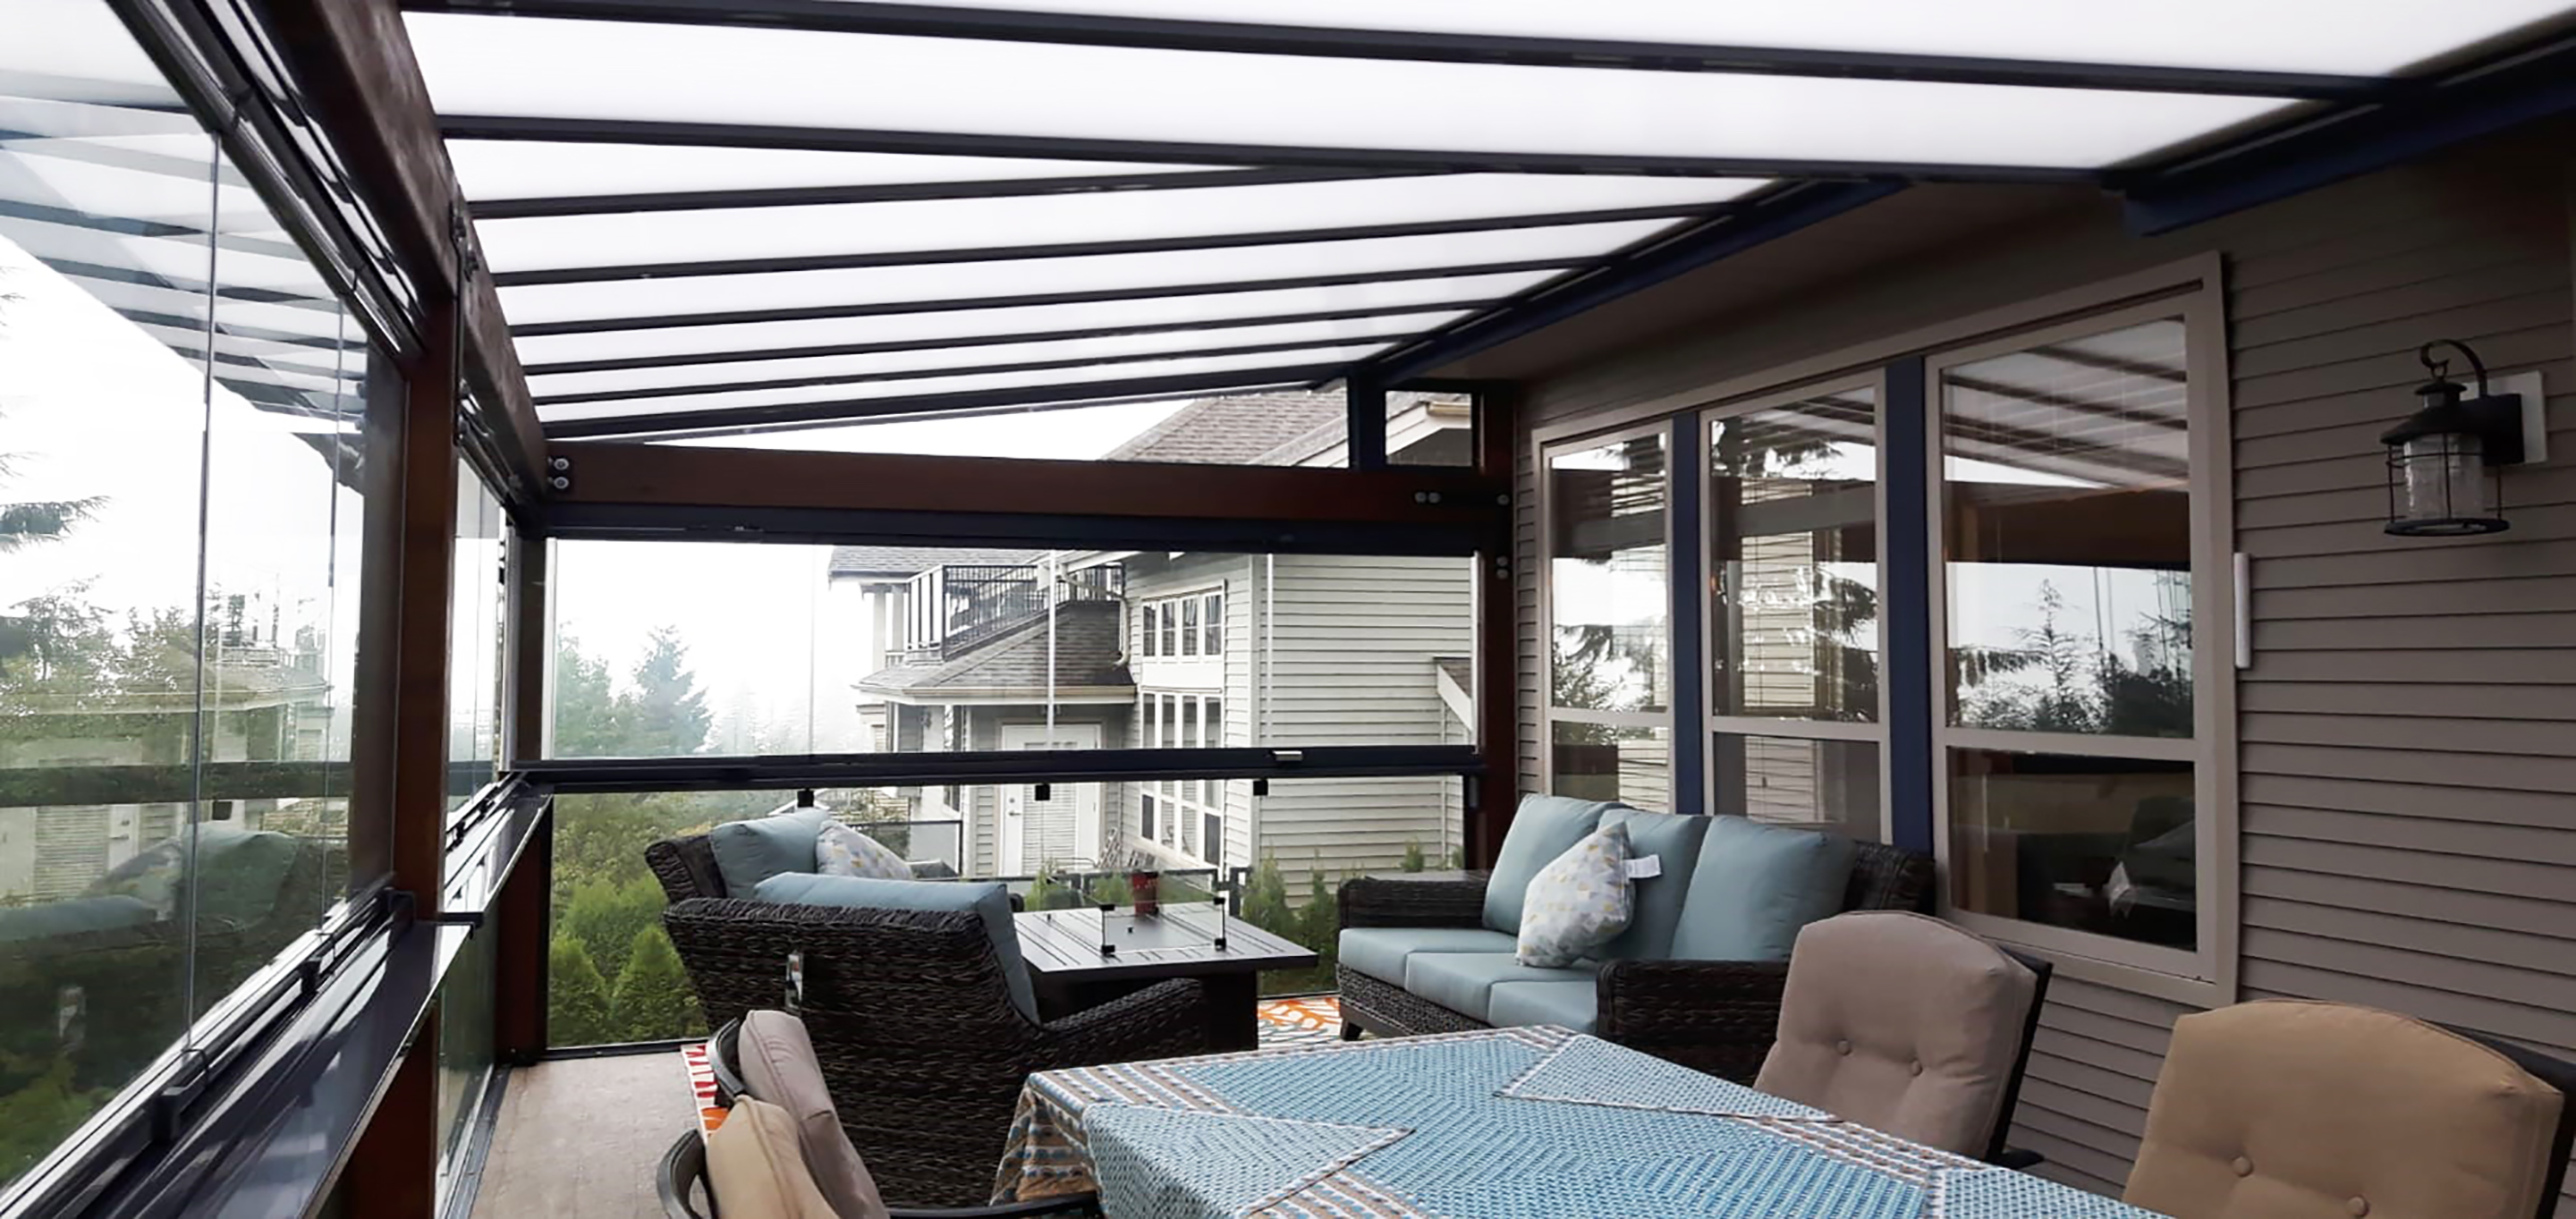 patio cover, wood patio cover, glass patio cover, outdoor living space, aluminum patio cover, sun deck, covered deck, patio awning, porch awning, awning